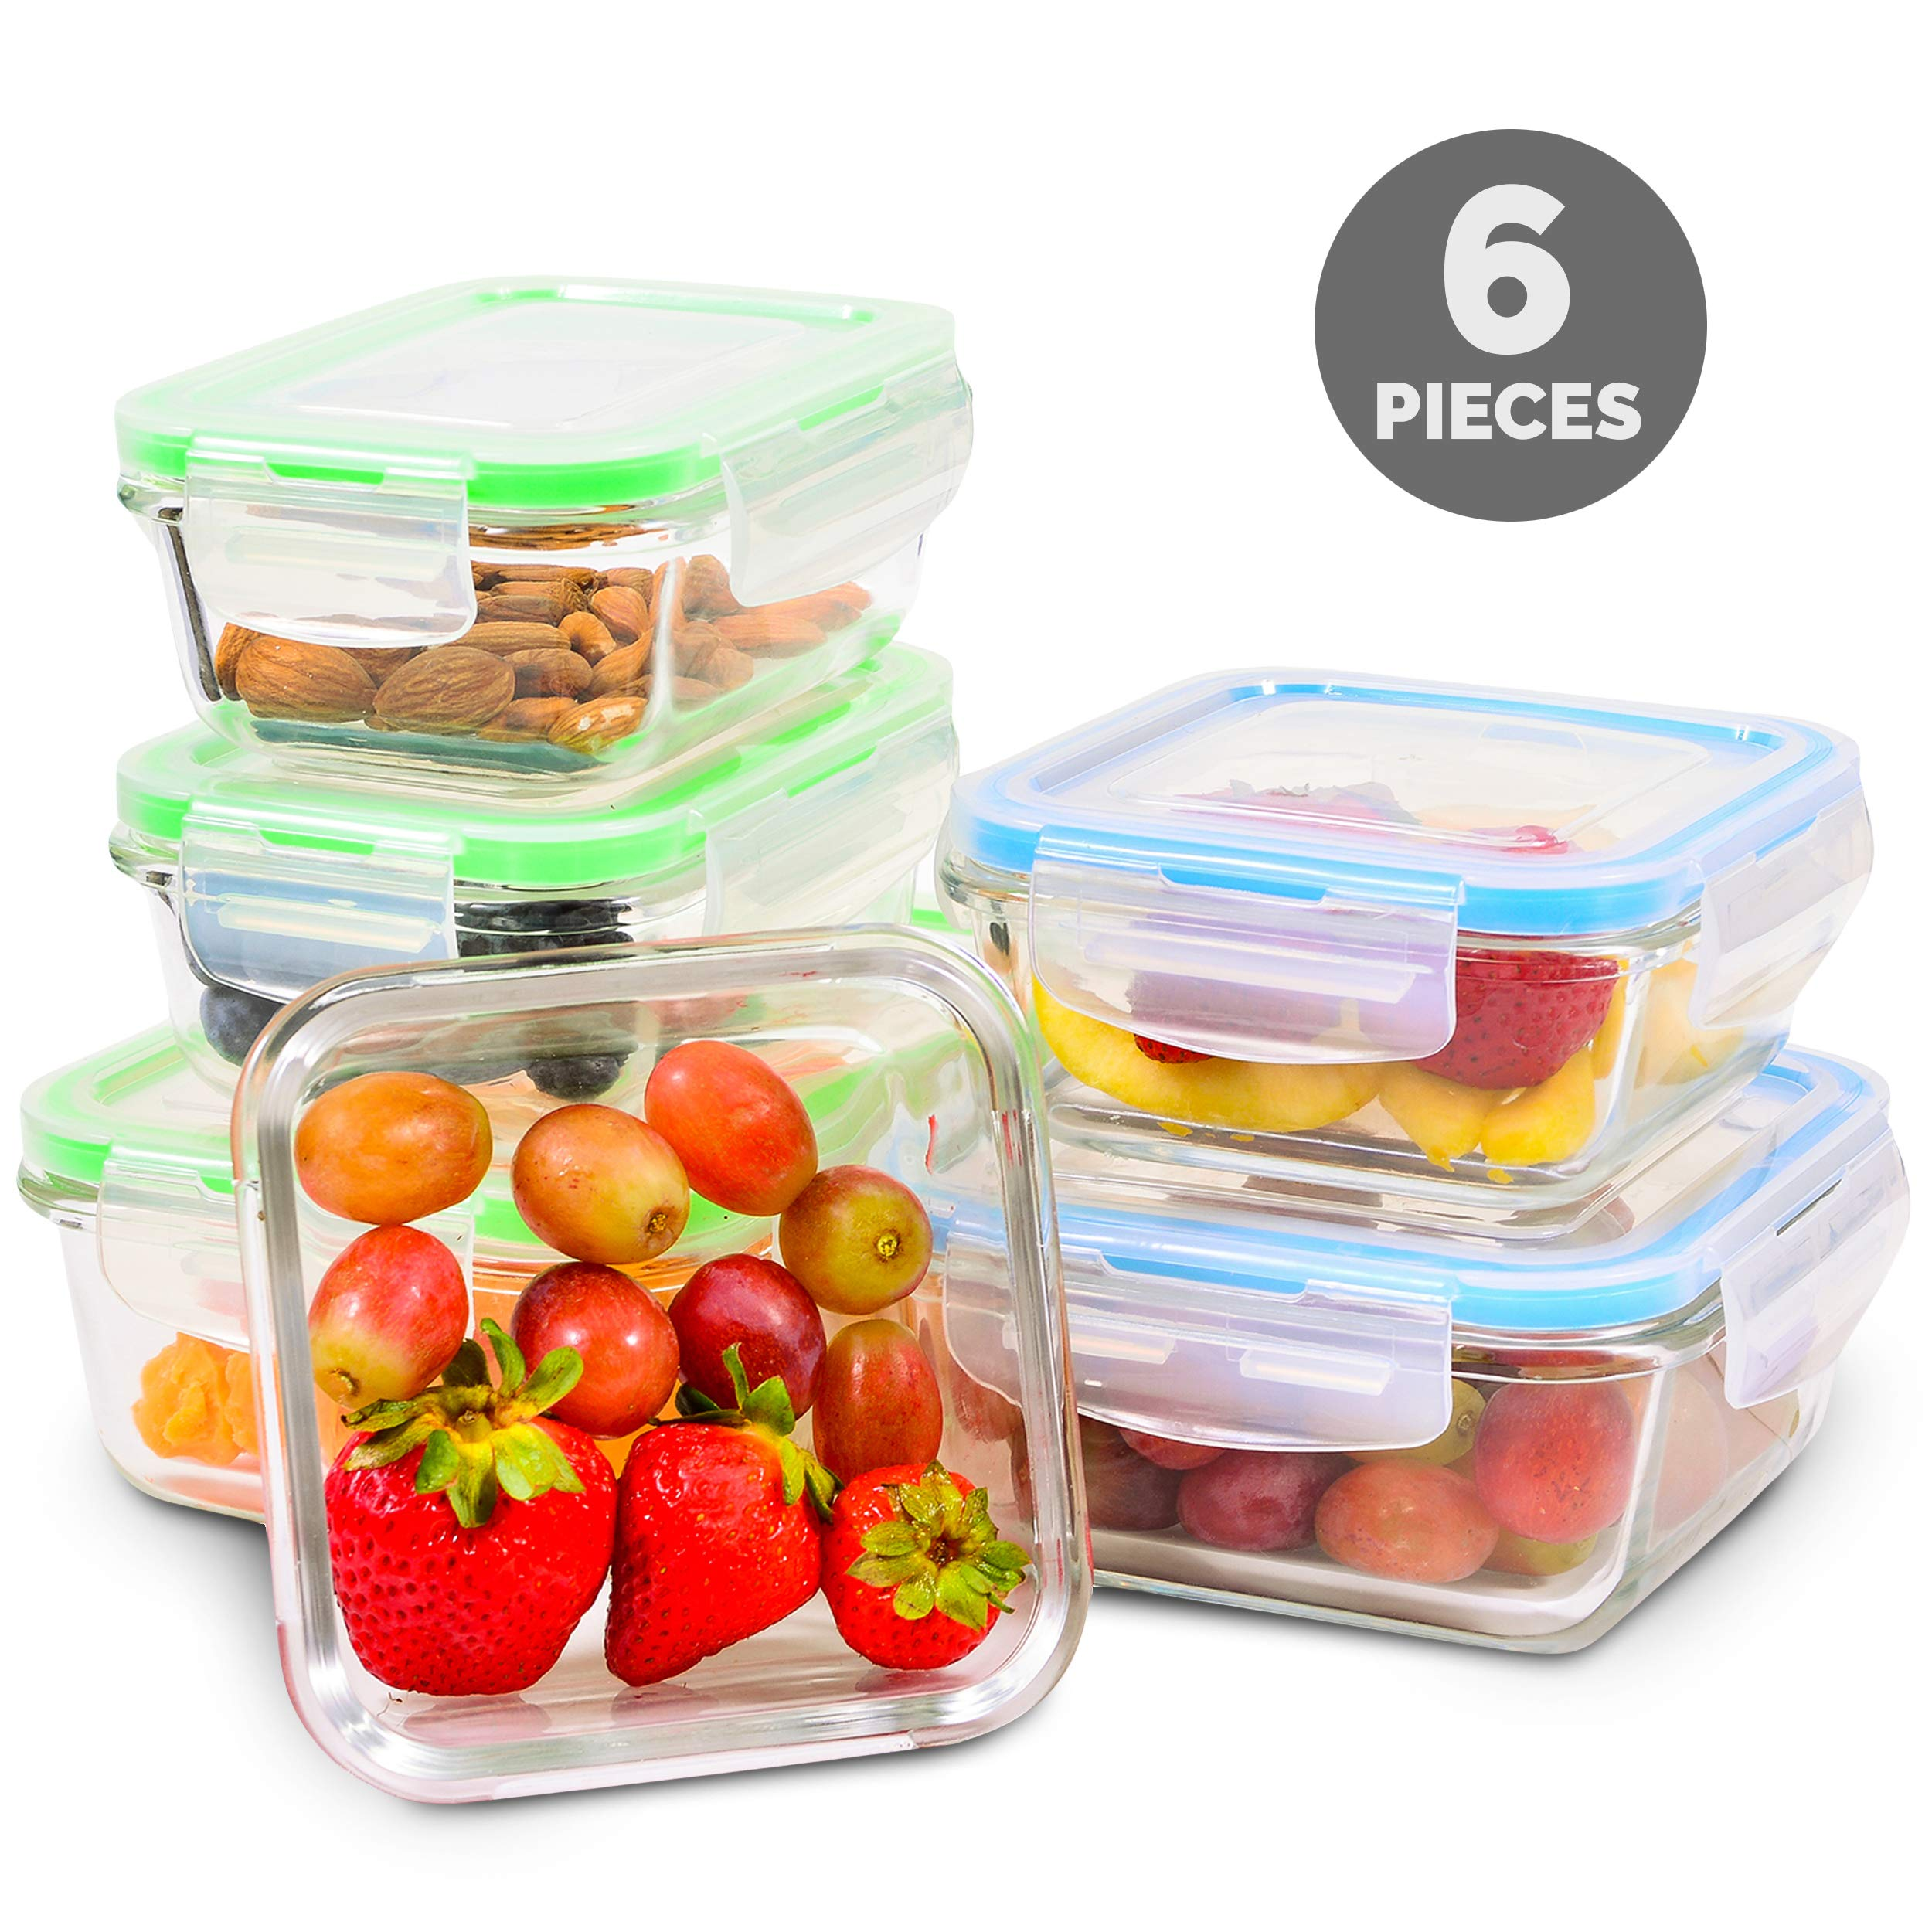 Elacra Glass Meal Prep Containers With Locking Lids 6